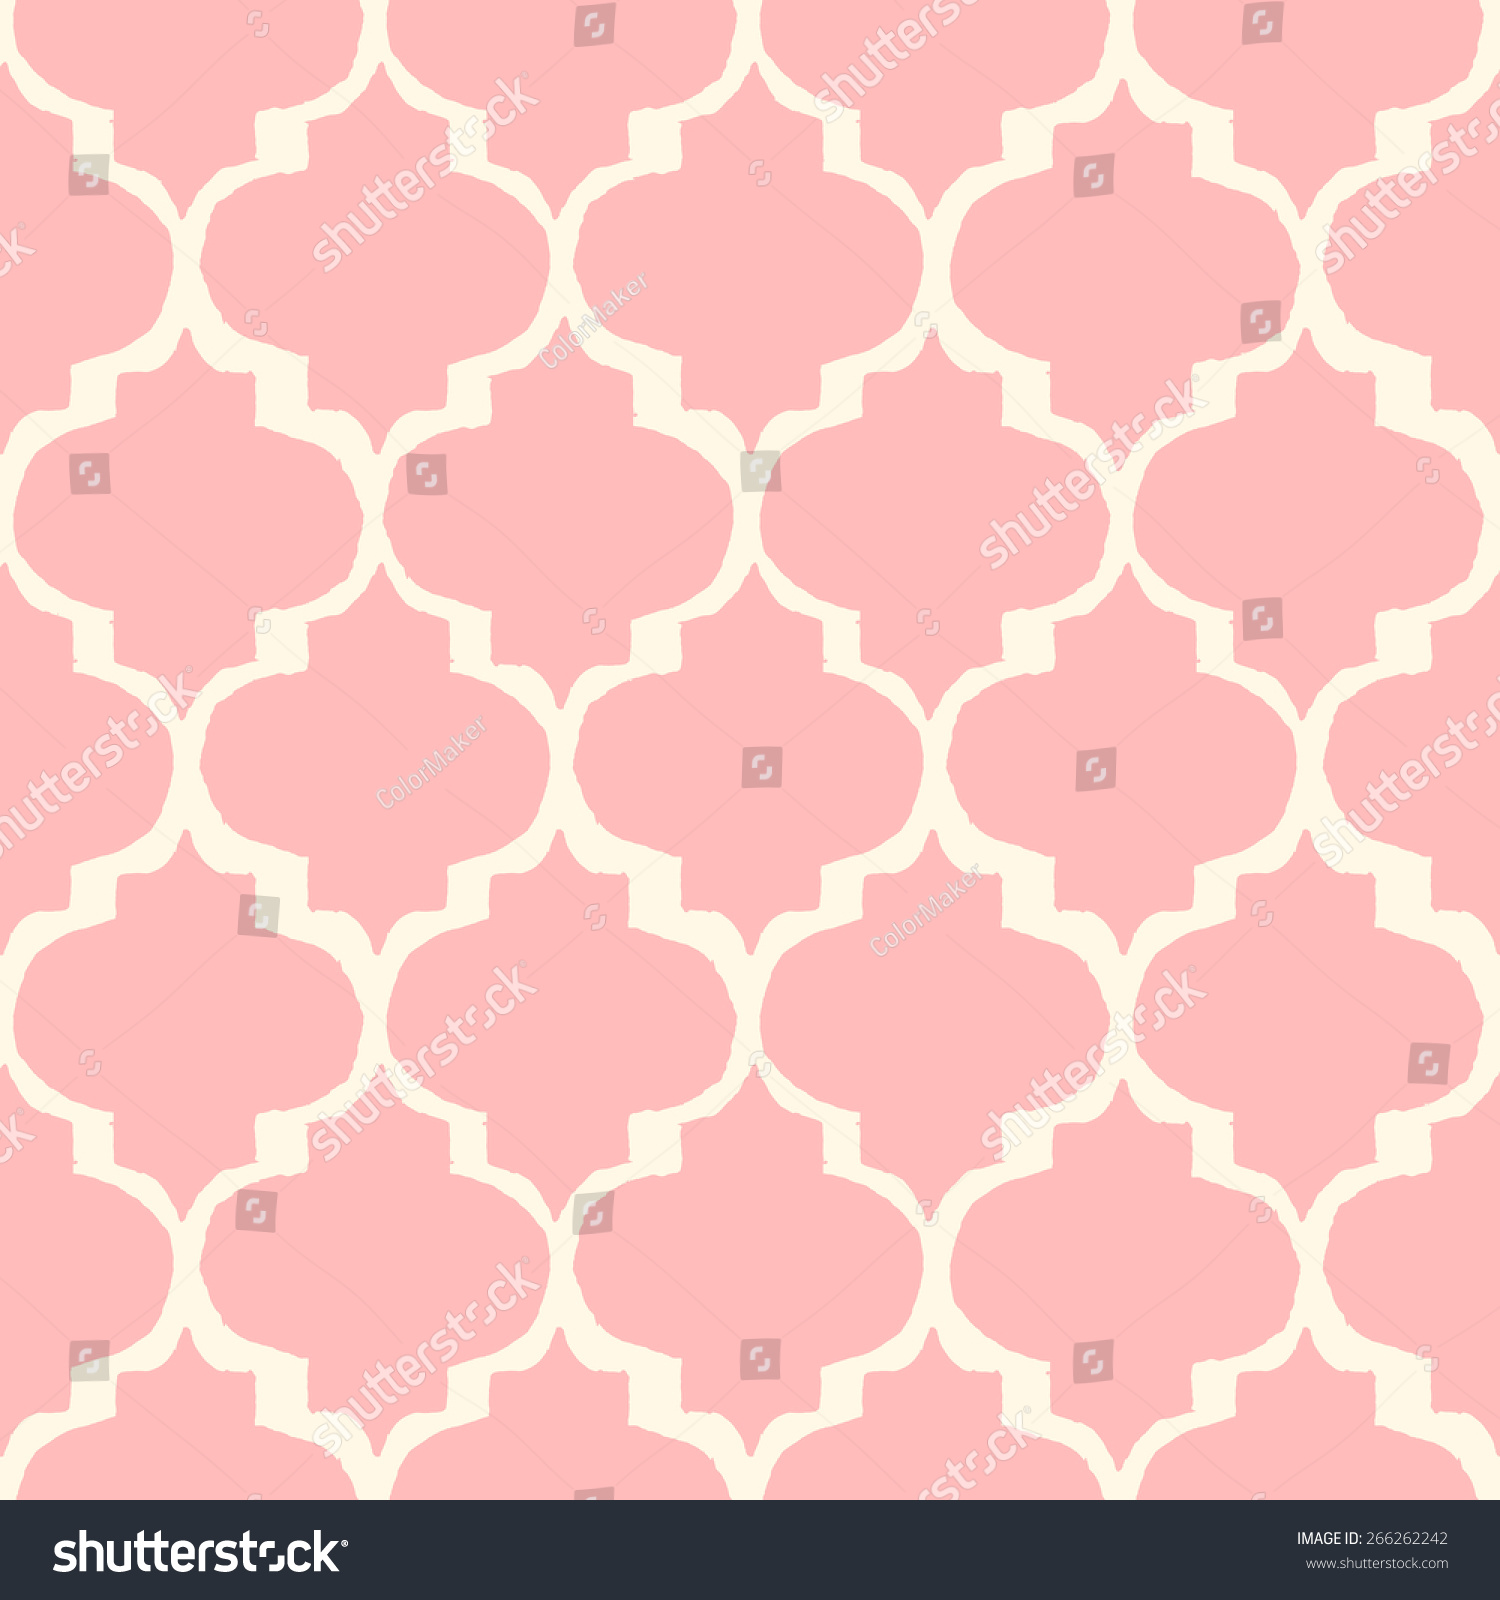 Moroccan style tiles inspired seamless pattern stock for Moroccan style wallpaper